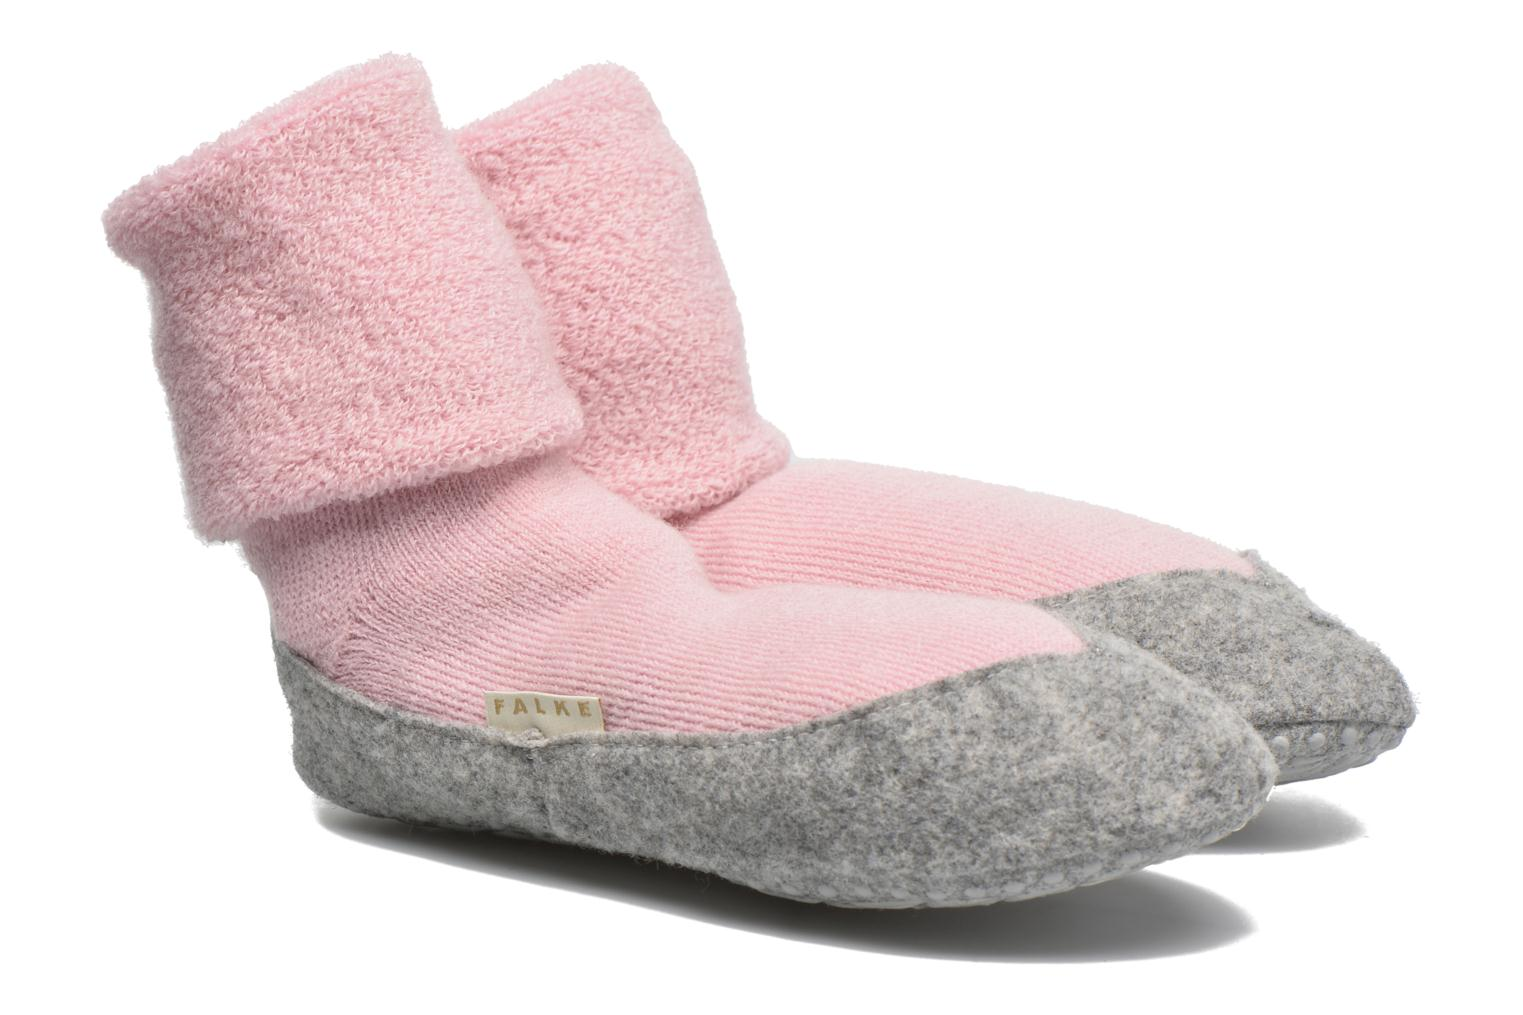 Chaussons-chaussettes Cosyshoe 8449